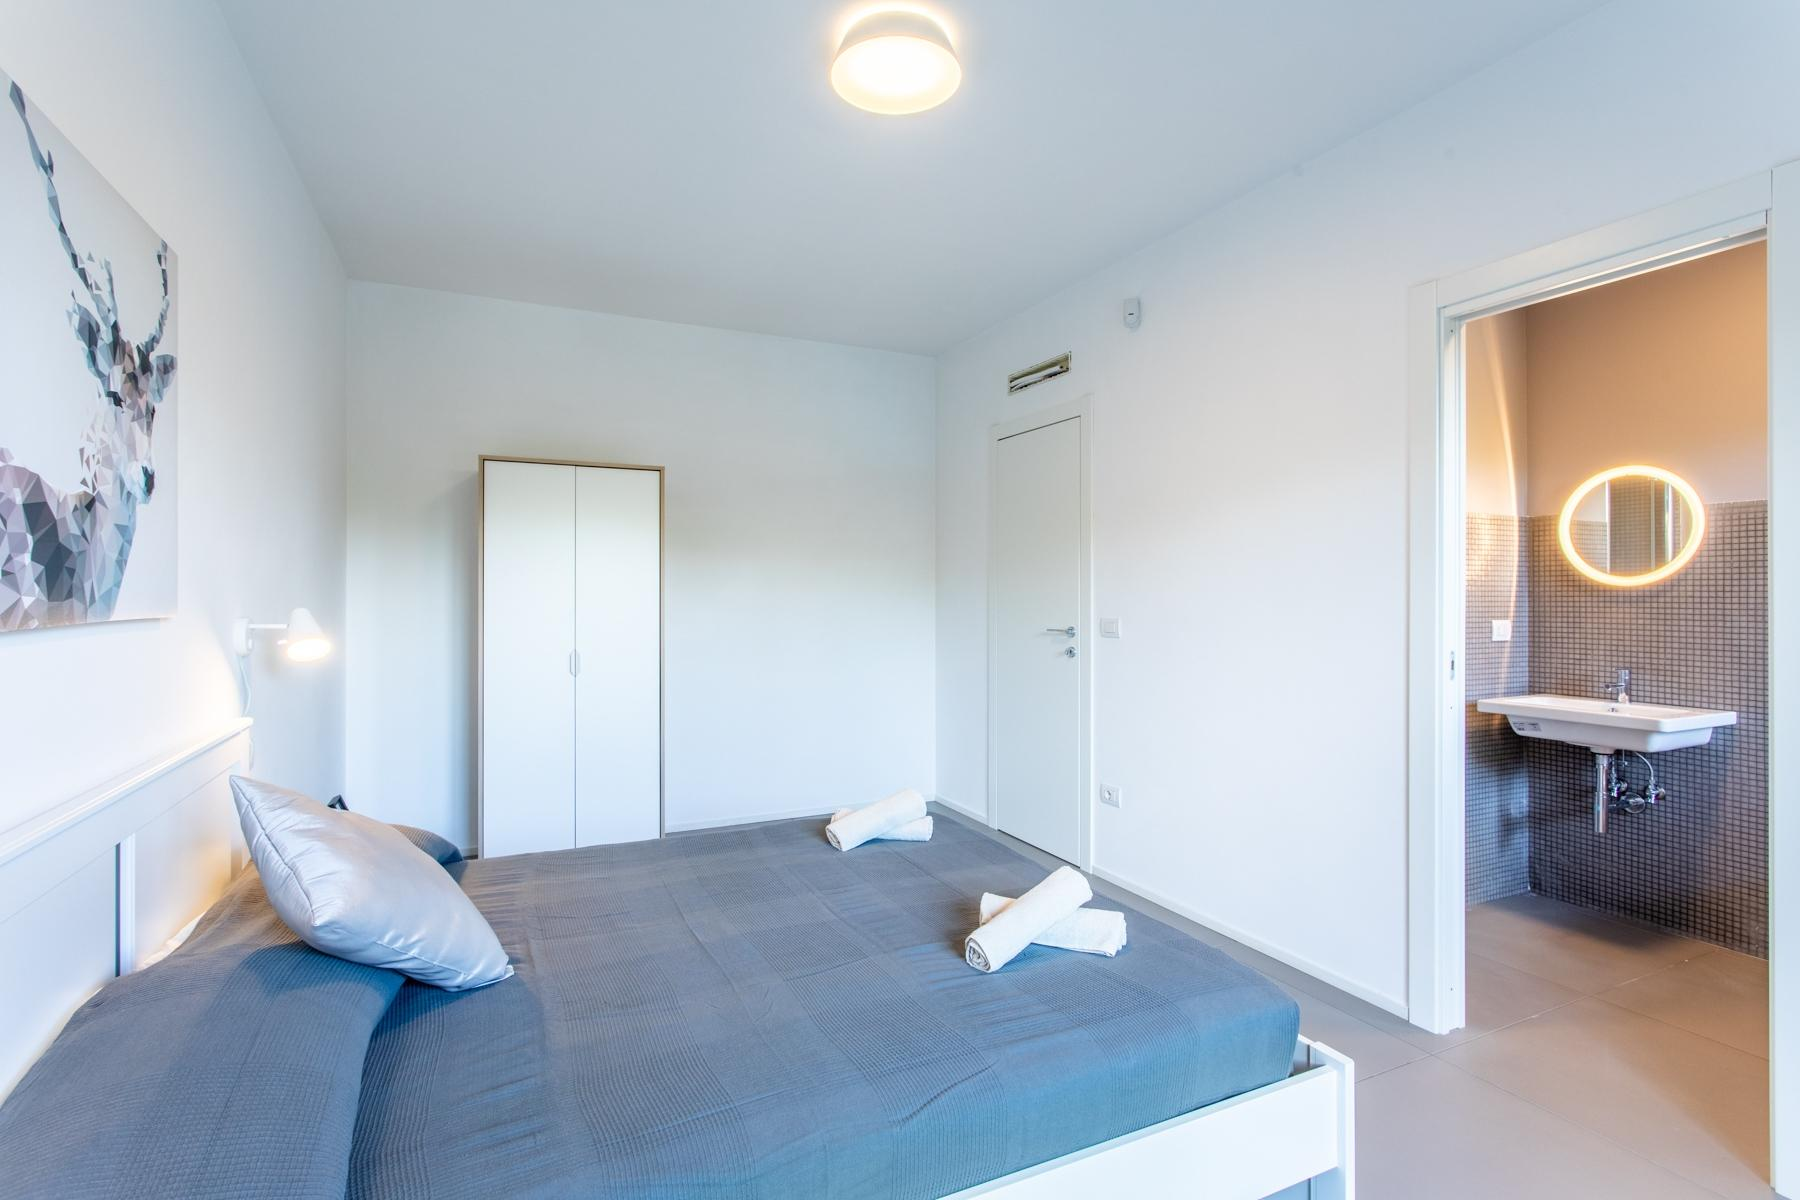 Front Lake Renovated apartment in Trevignano - 17